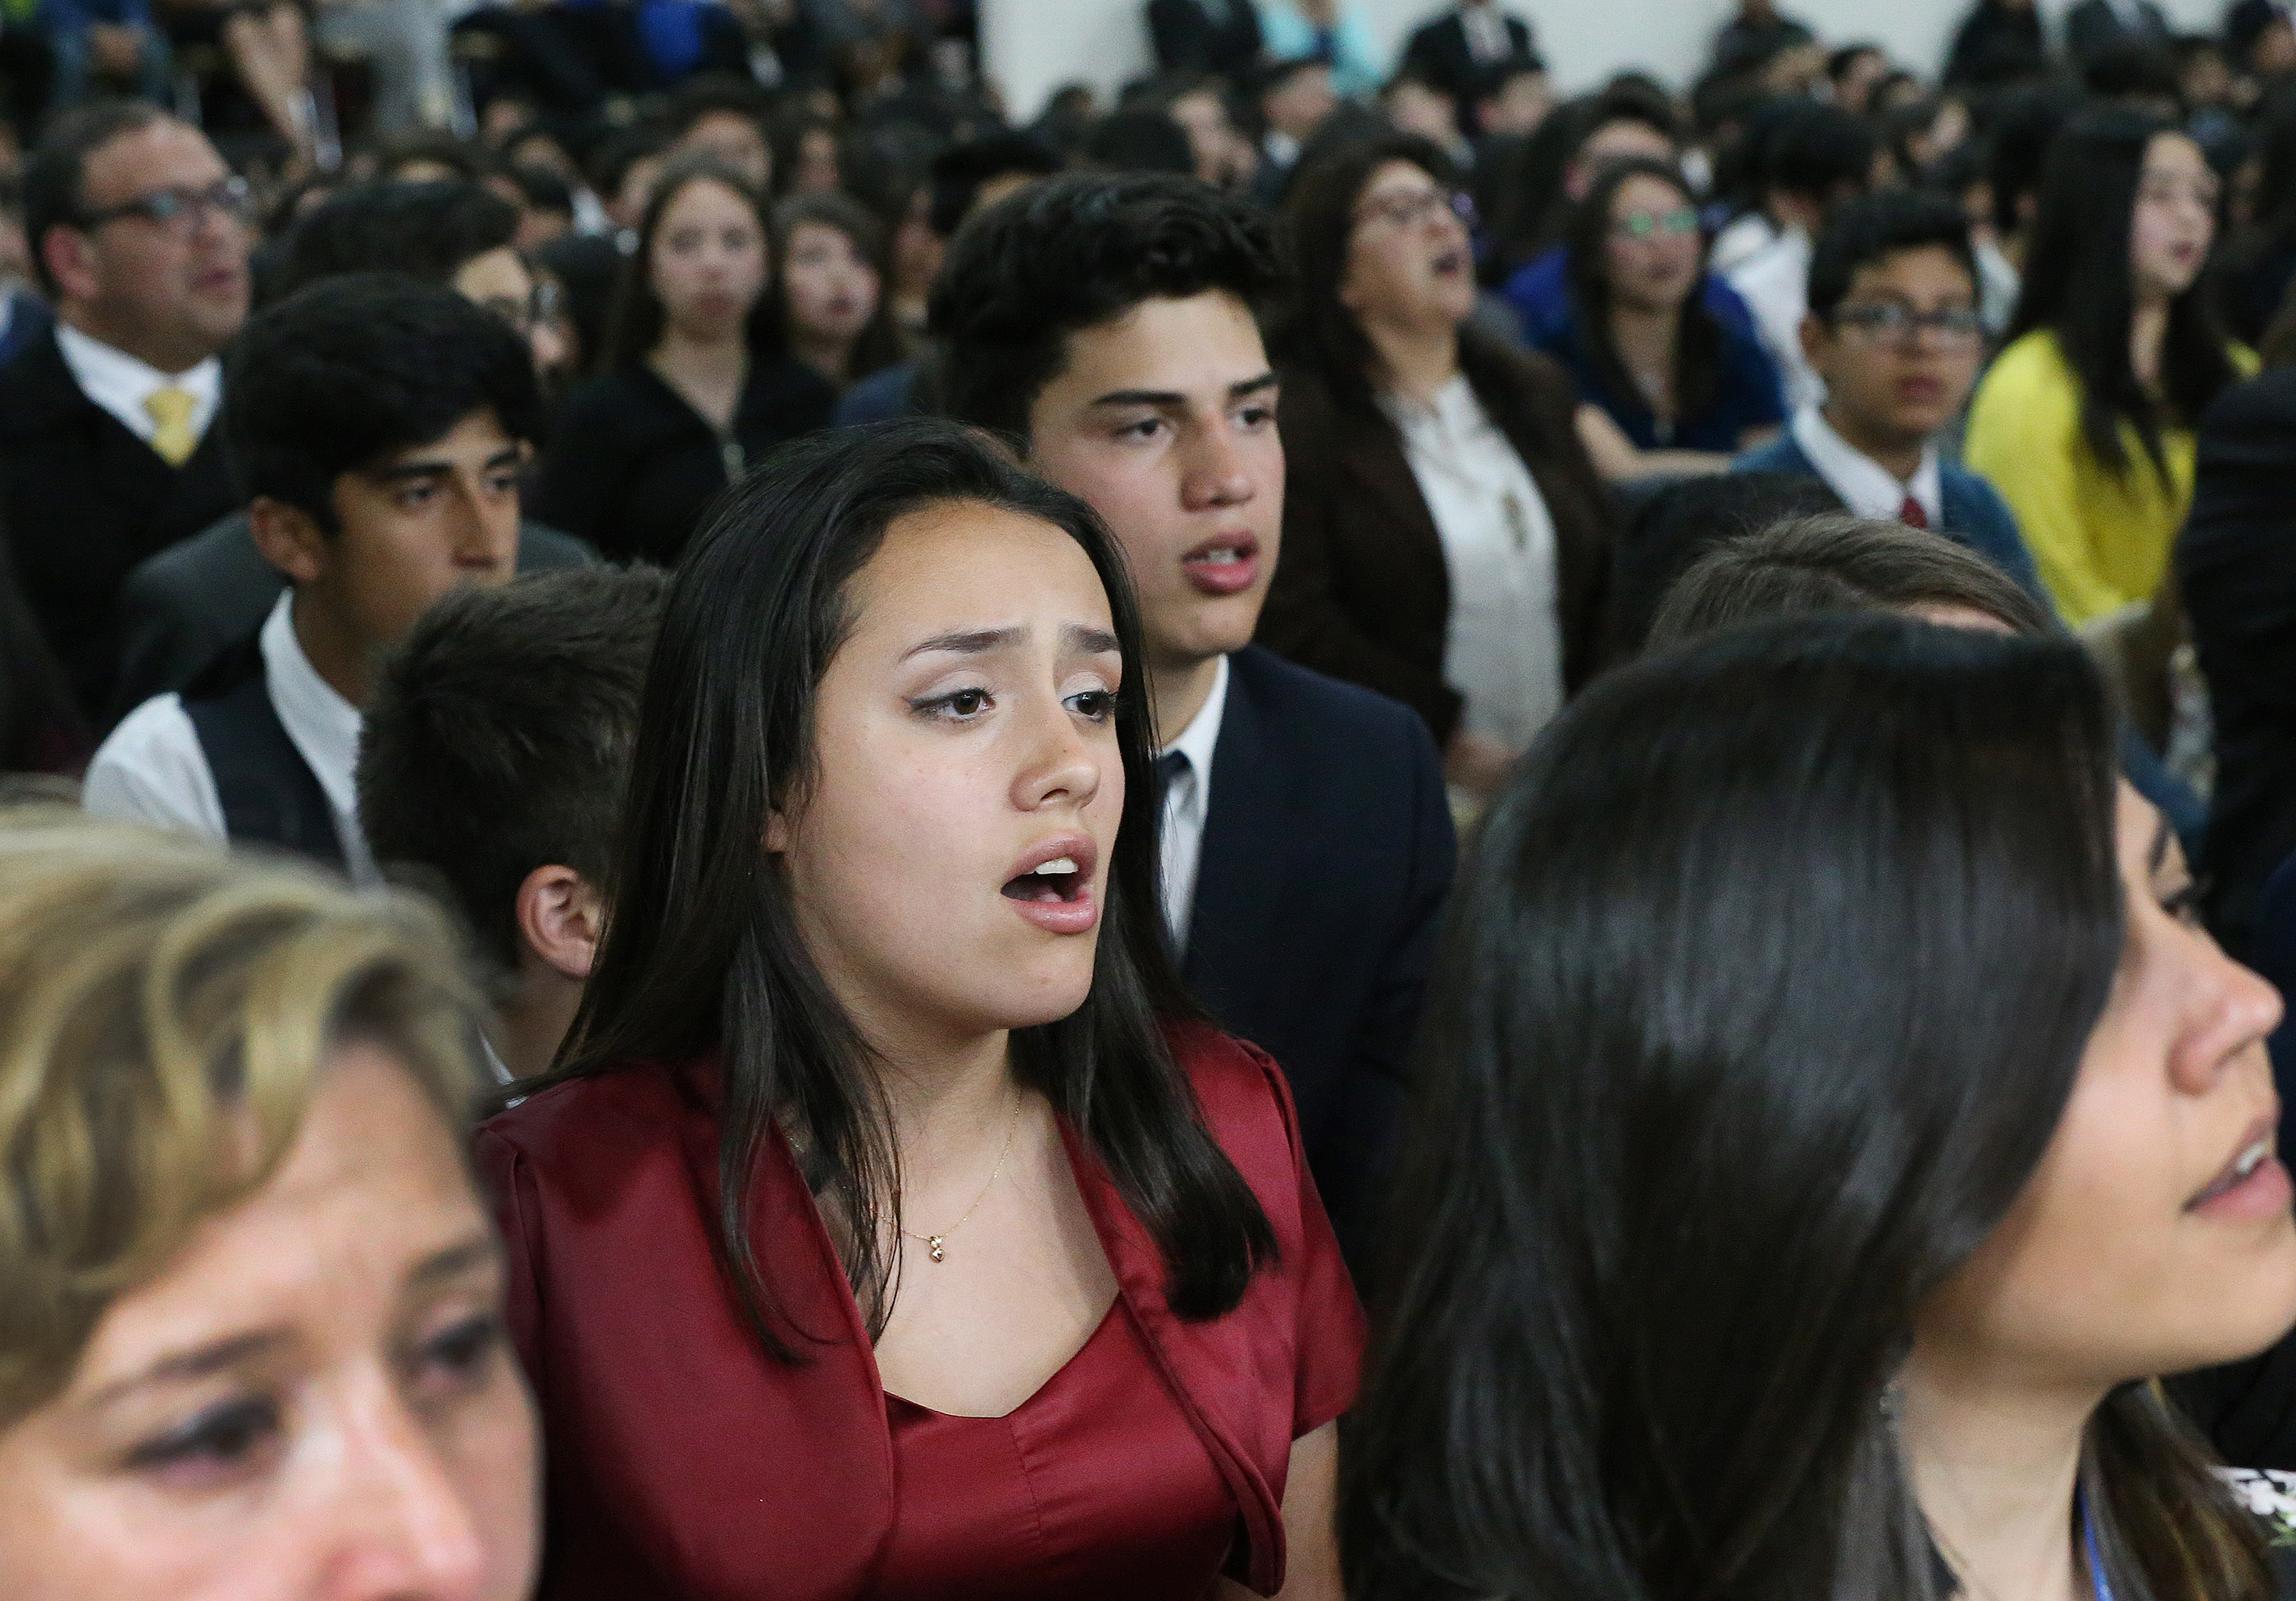 Attendees sing during a youth devotional in Concepción, Chile, on Saturday, Oct. 27, 2018.